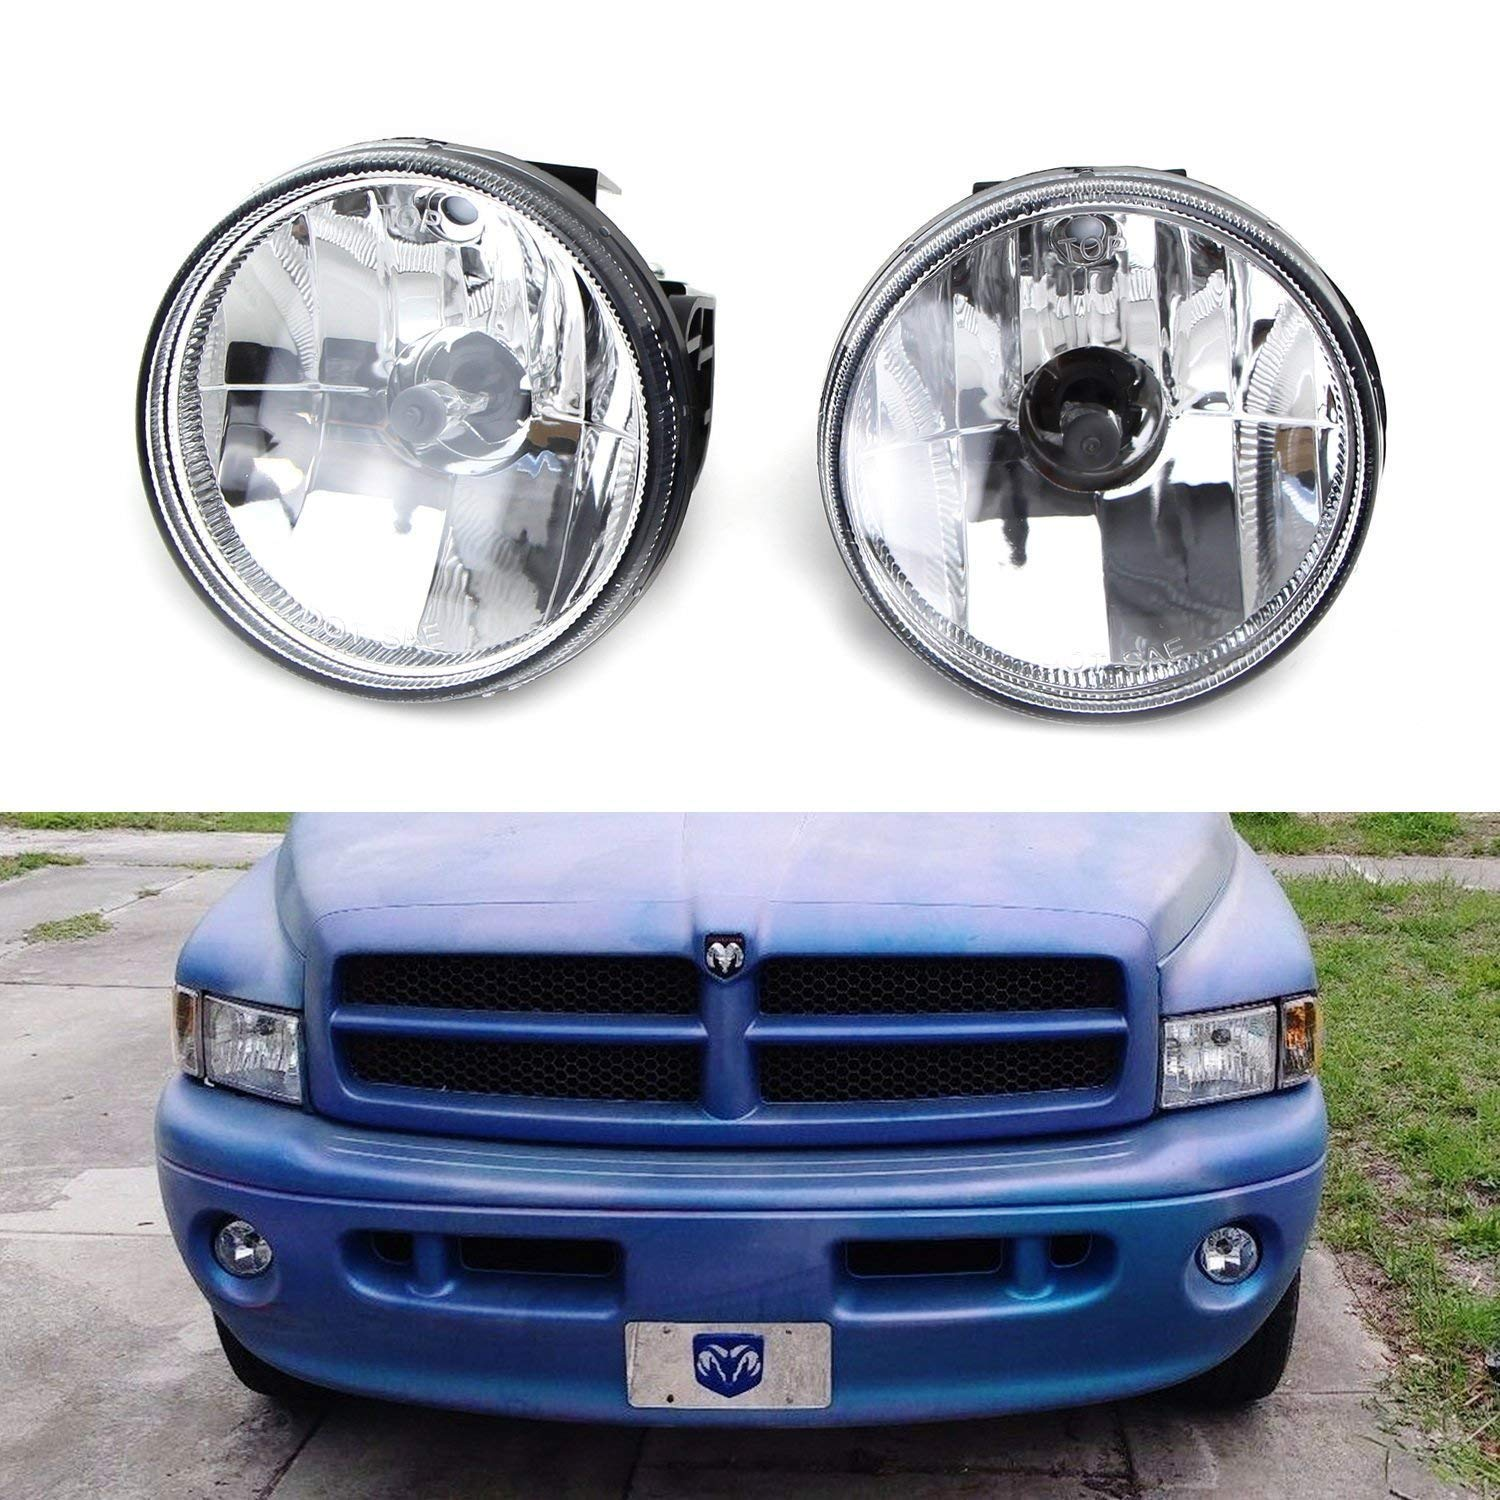 iJDMTOY Clear Lens Fog Lights Foglamp Kit with H3 Halogen Bulbs For 1999-2002 Dodge RAM 1500 2500 w/Sport Package Bumper ONLY iJDMTOY Auto Accessories Complete Left/Right Driver/Passenger Set